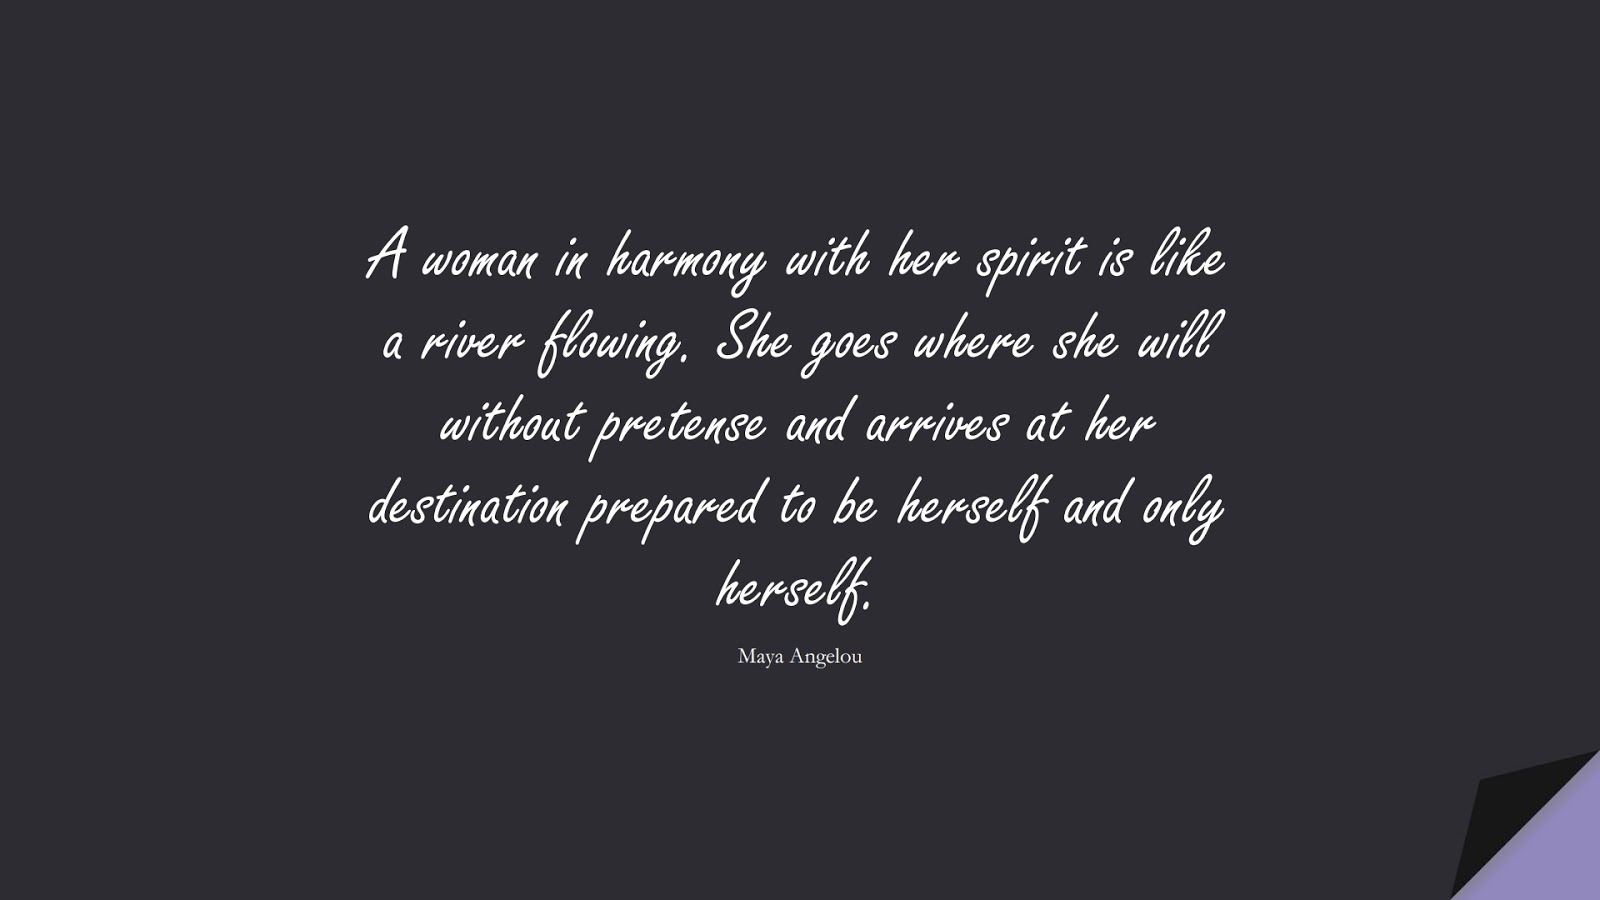 A woman in harmony with her spirit is like a river flowing. She goes where she will without pretense and arrives at her destination prepared to be herself and only herself. (Maya Angelou);  #MayaAngelouQuotes